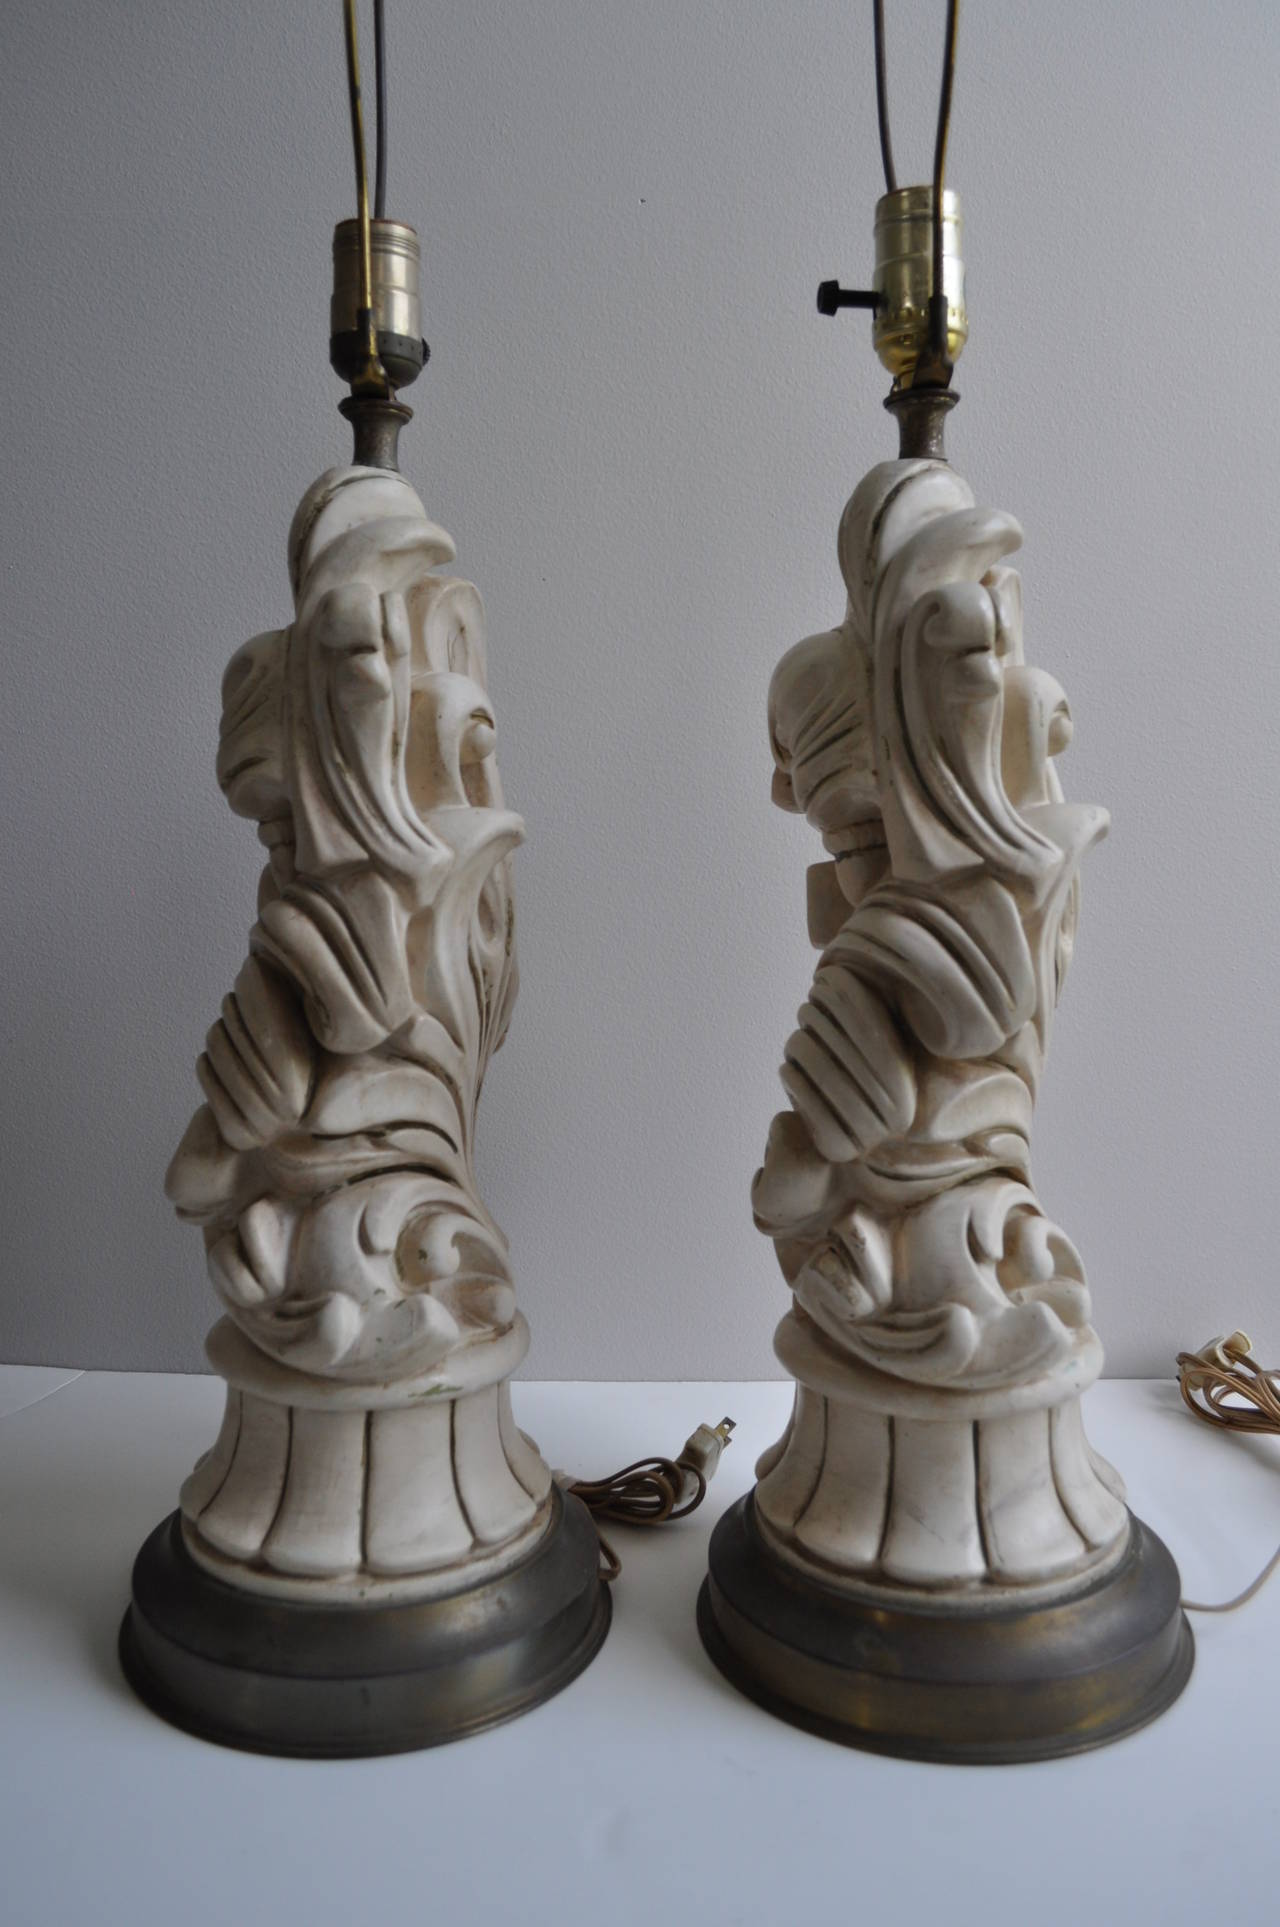 Beautiful pair of sculptural scroll plaster lamps with Baroque styling attributed to Chapman. Features original cream finish and amazing carved scrolled leaf detailing. Plaster bodies attached to brass bases with aged patina. Original 1950s wiring